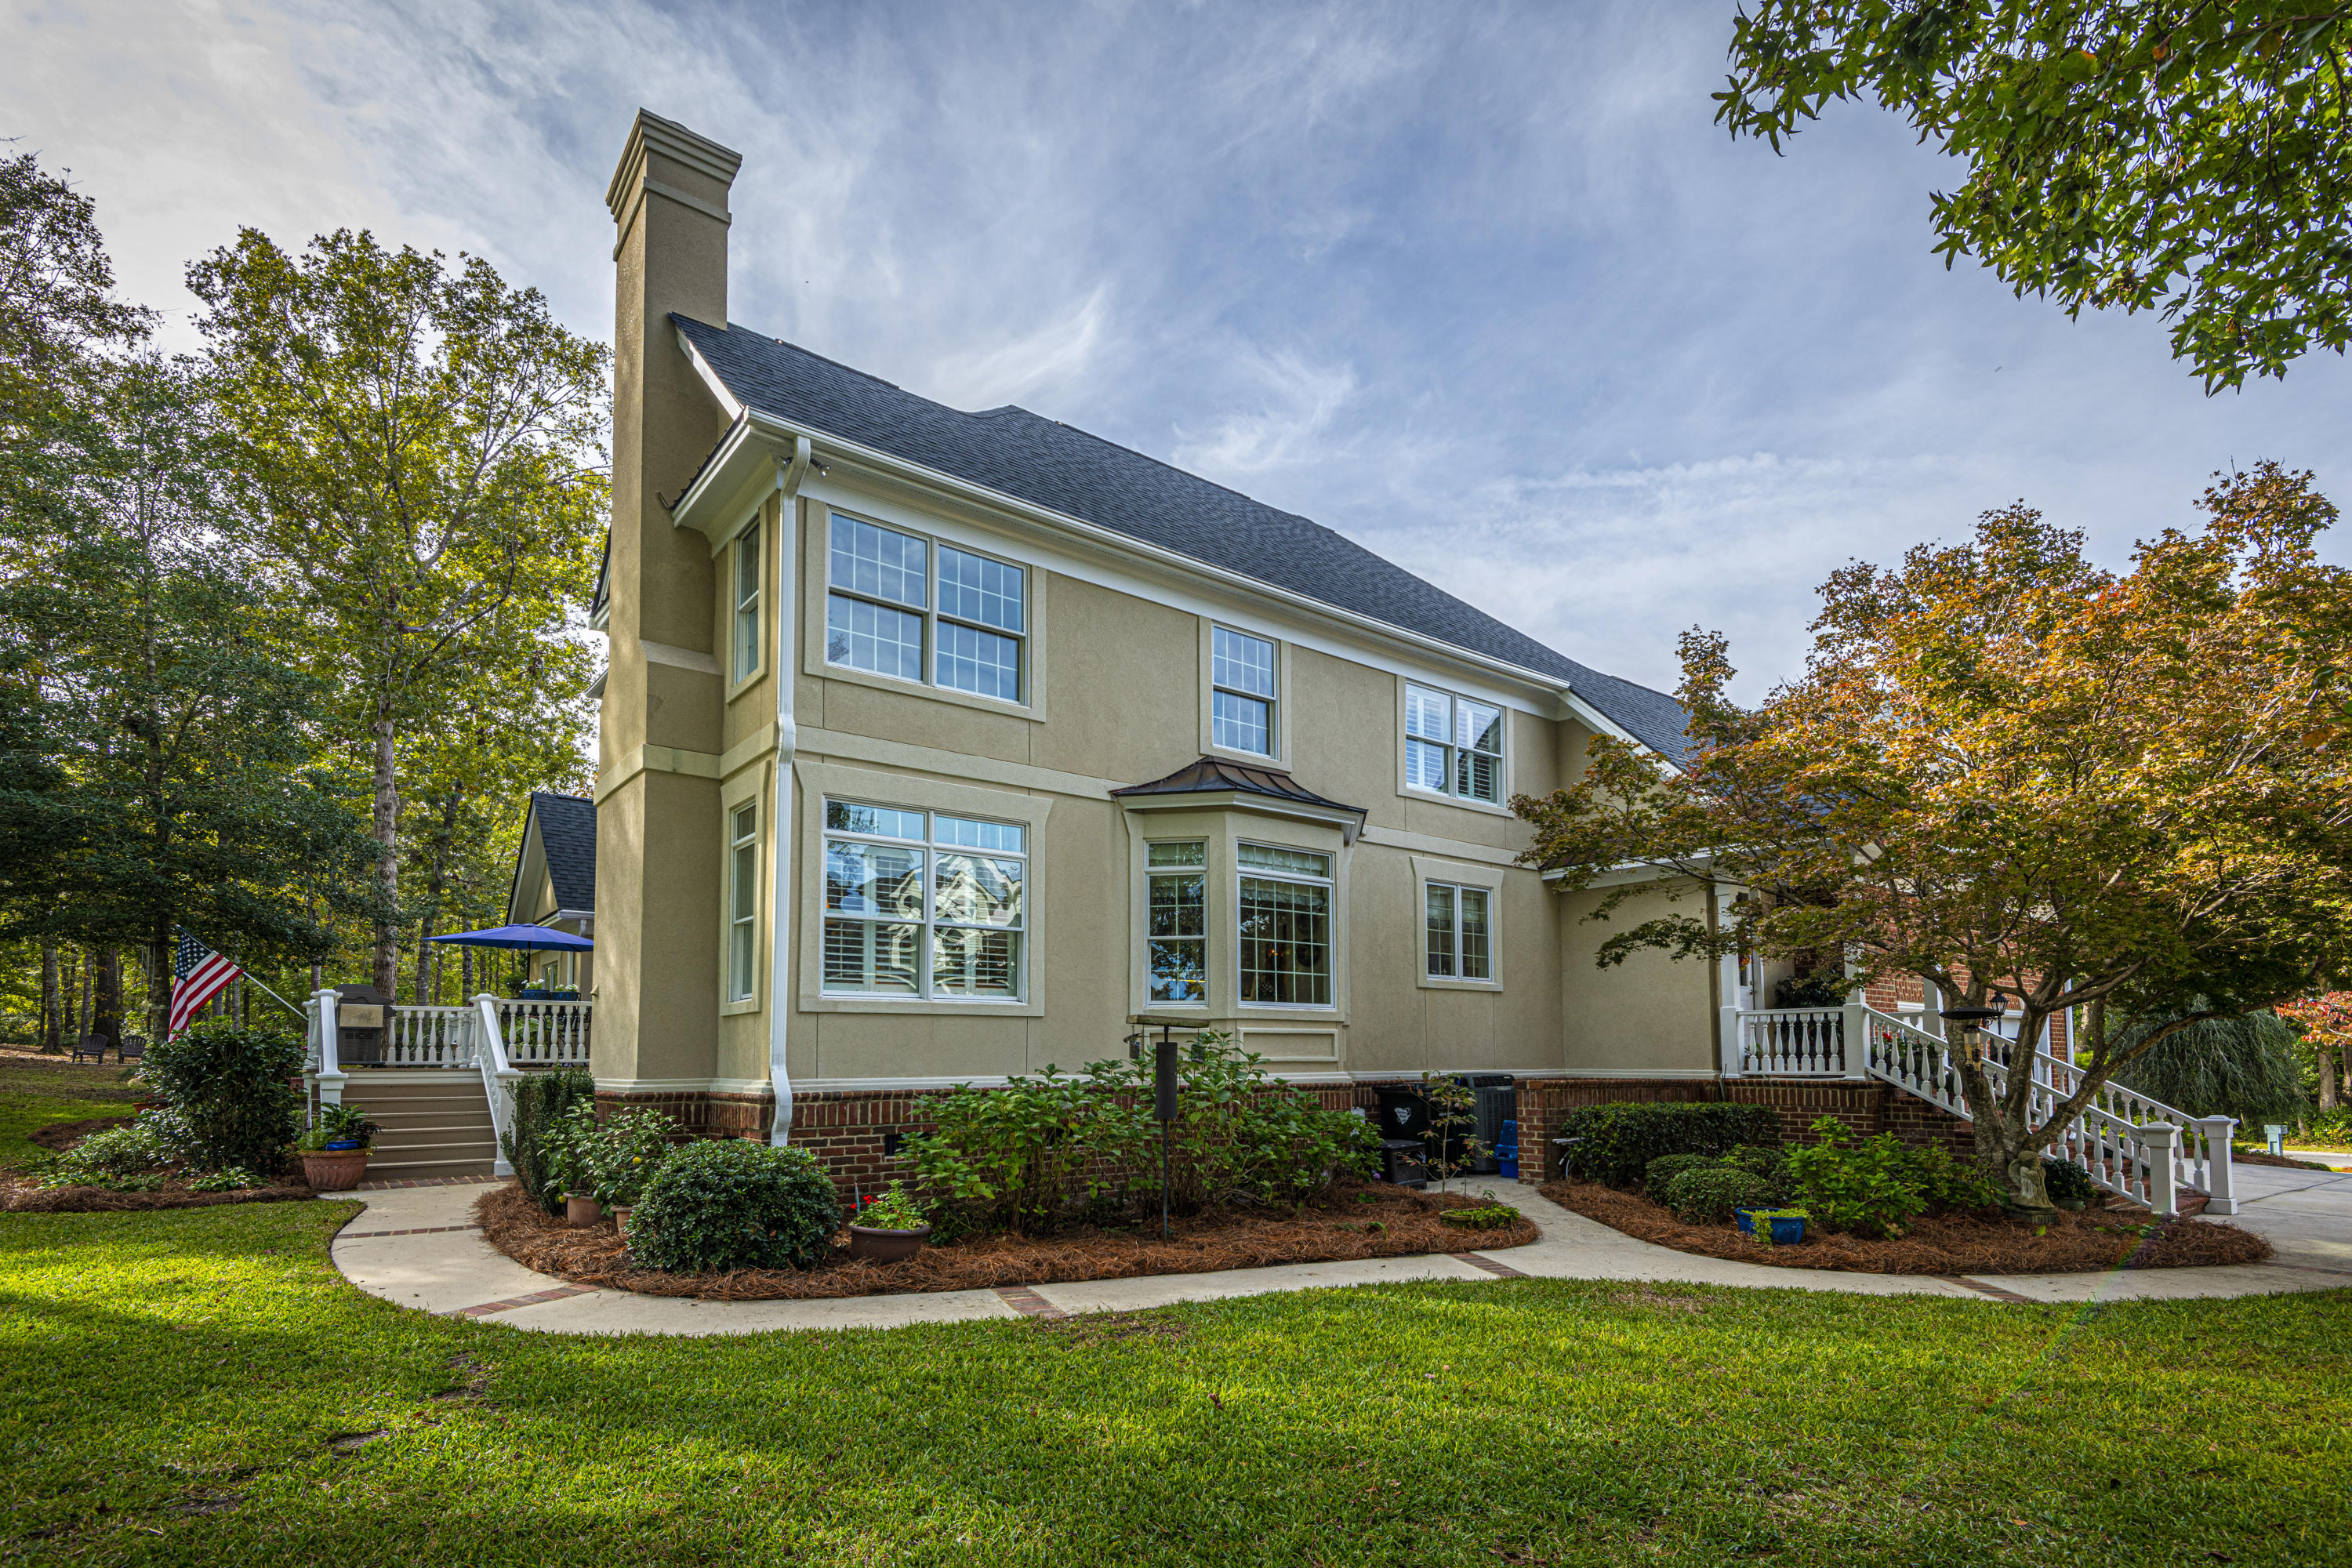 Coosaw Creek Country Club Homes For Sale - 8642 Fairway Woods, North Charleston, SC - 2